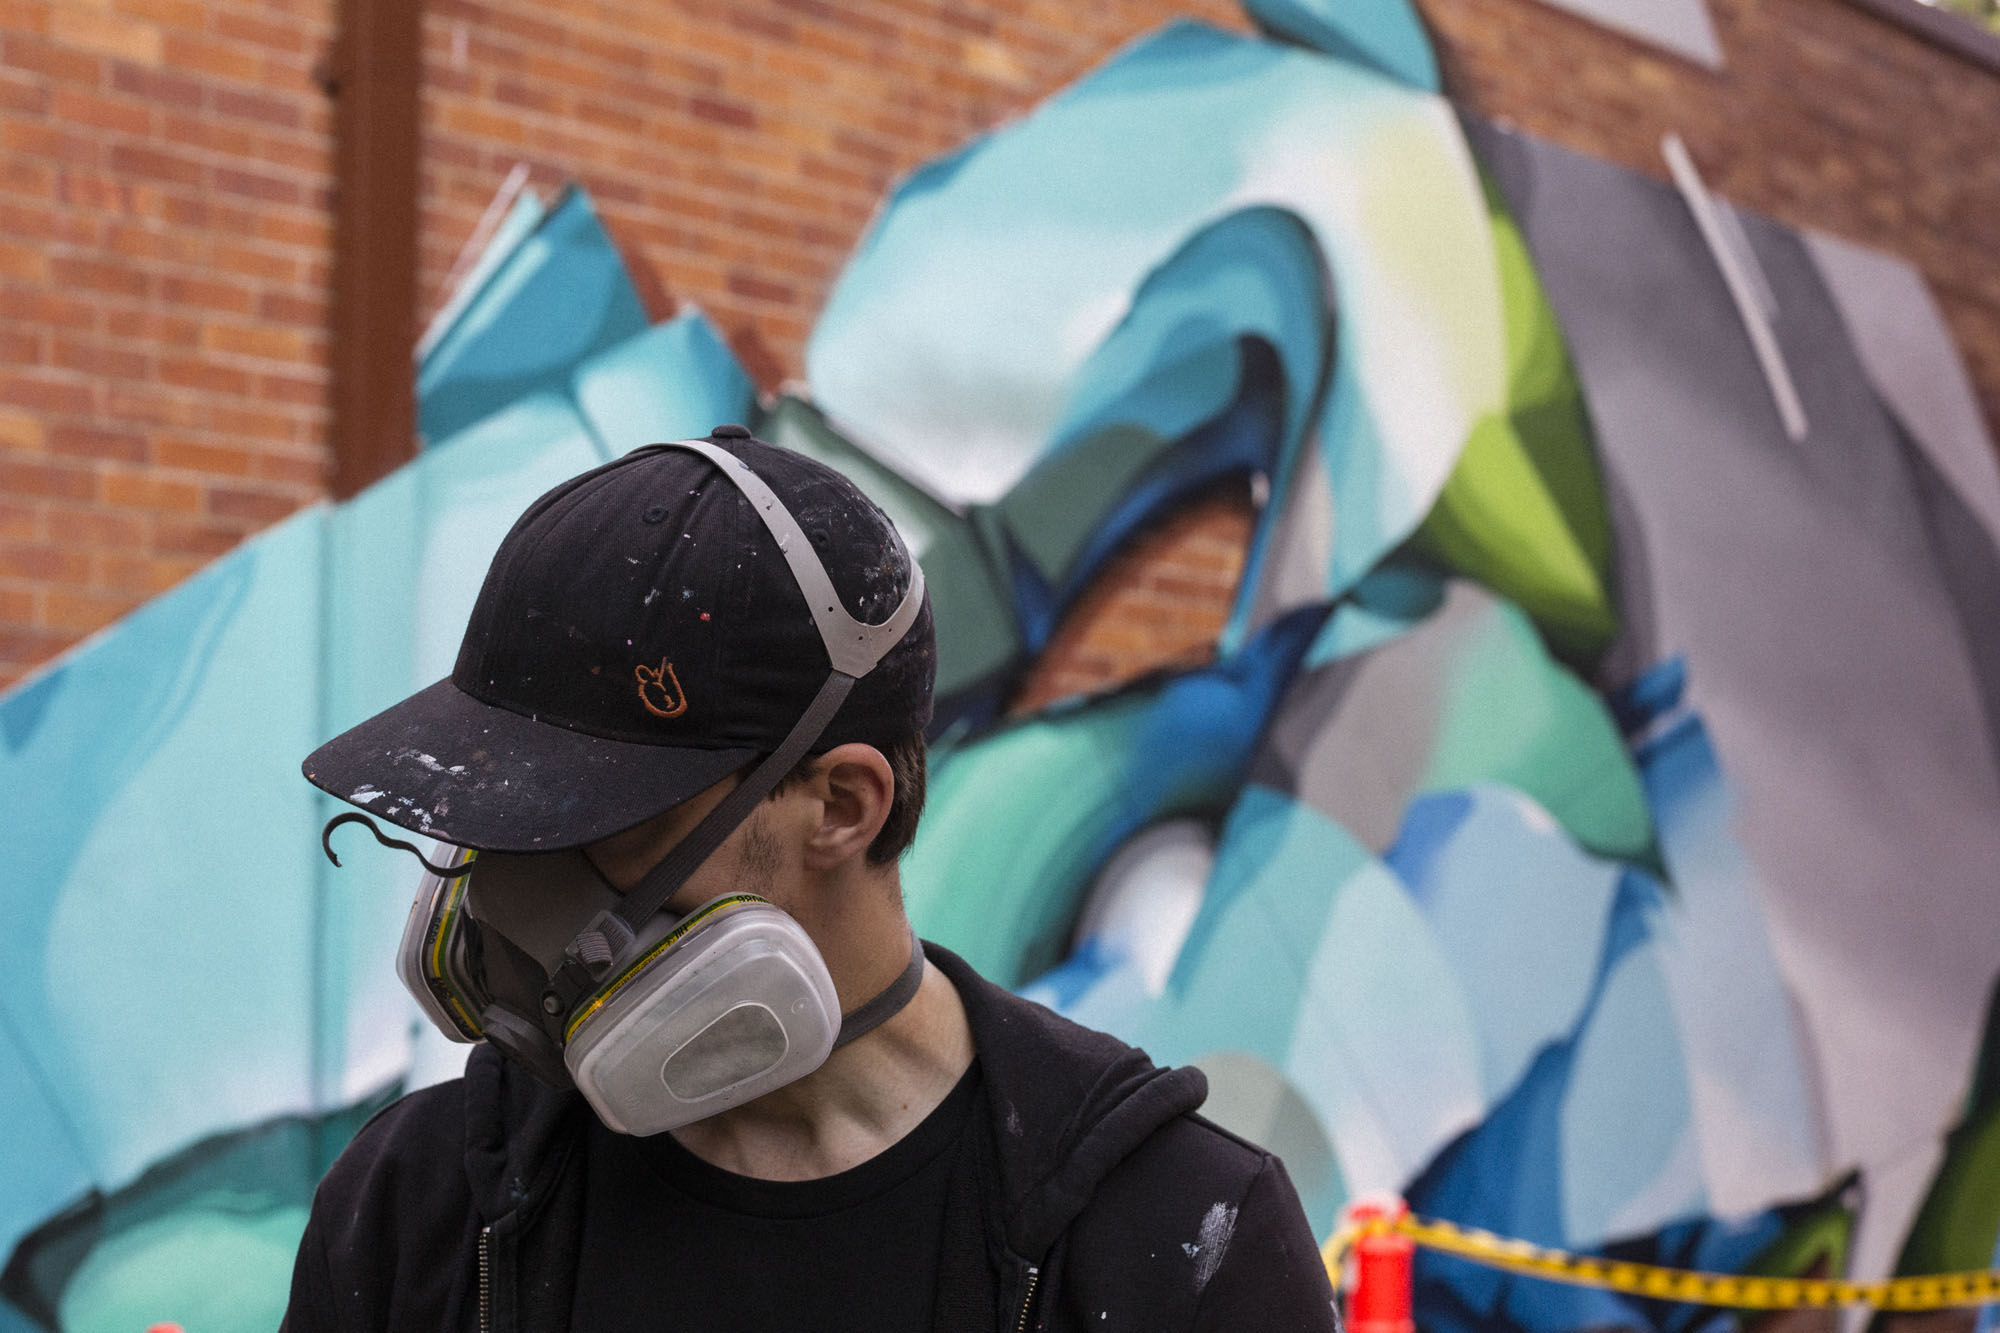 A work by Does - 201905-DOES-QUT-Brisbane_LukeShirlaw_IMG_0495